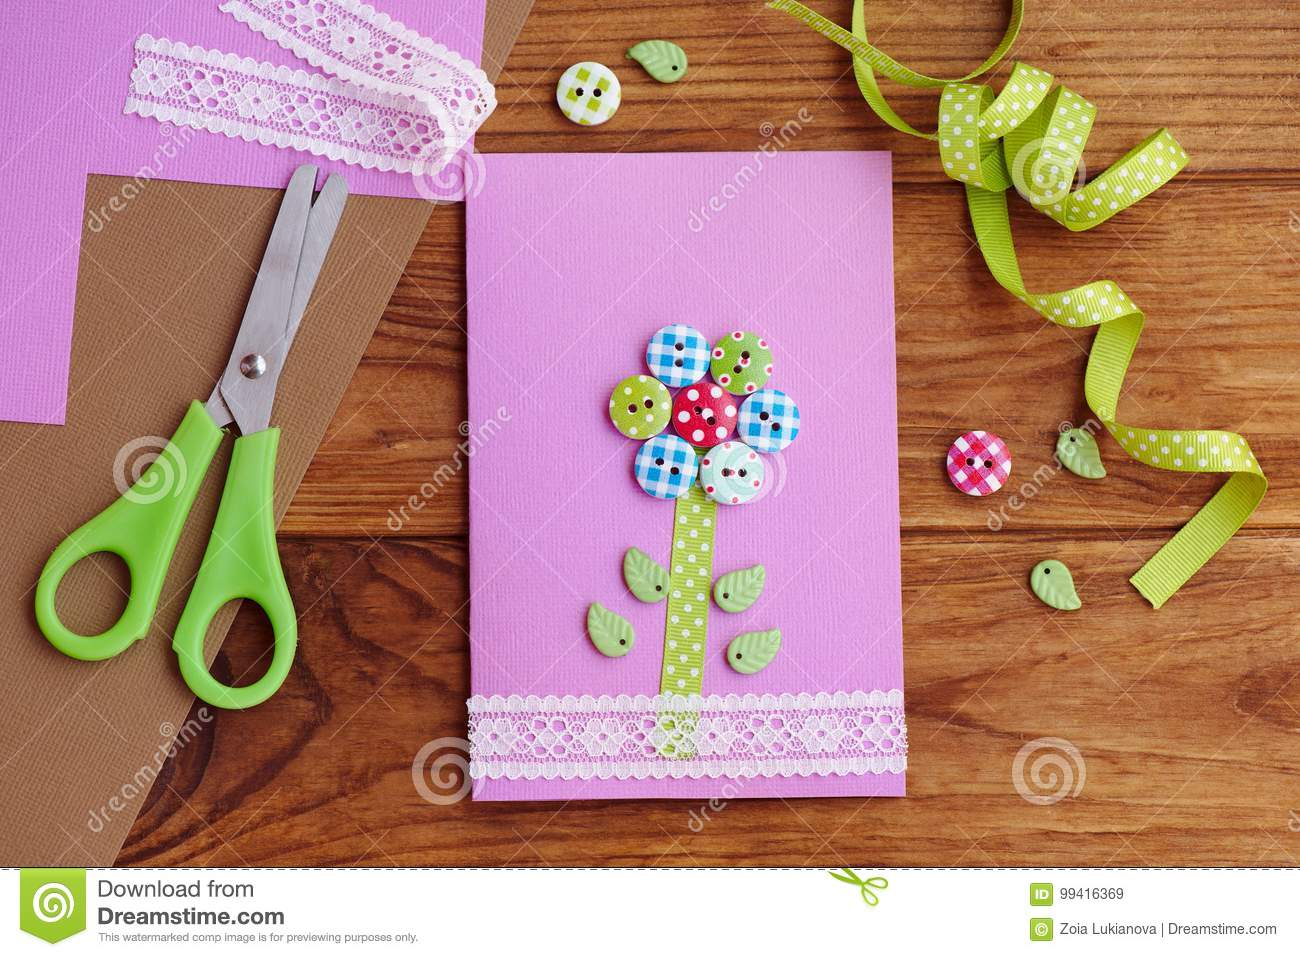 Greeting Card With A Flower Made Of Wooden Buttons Decorated With